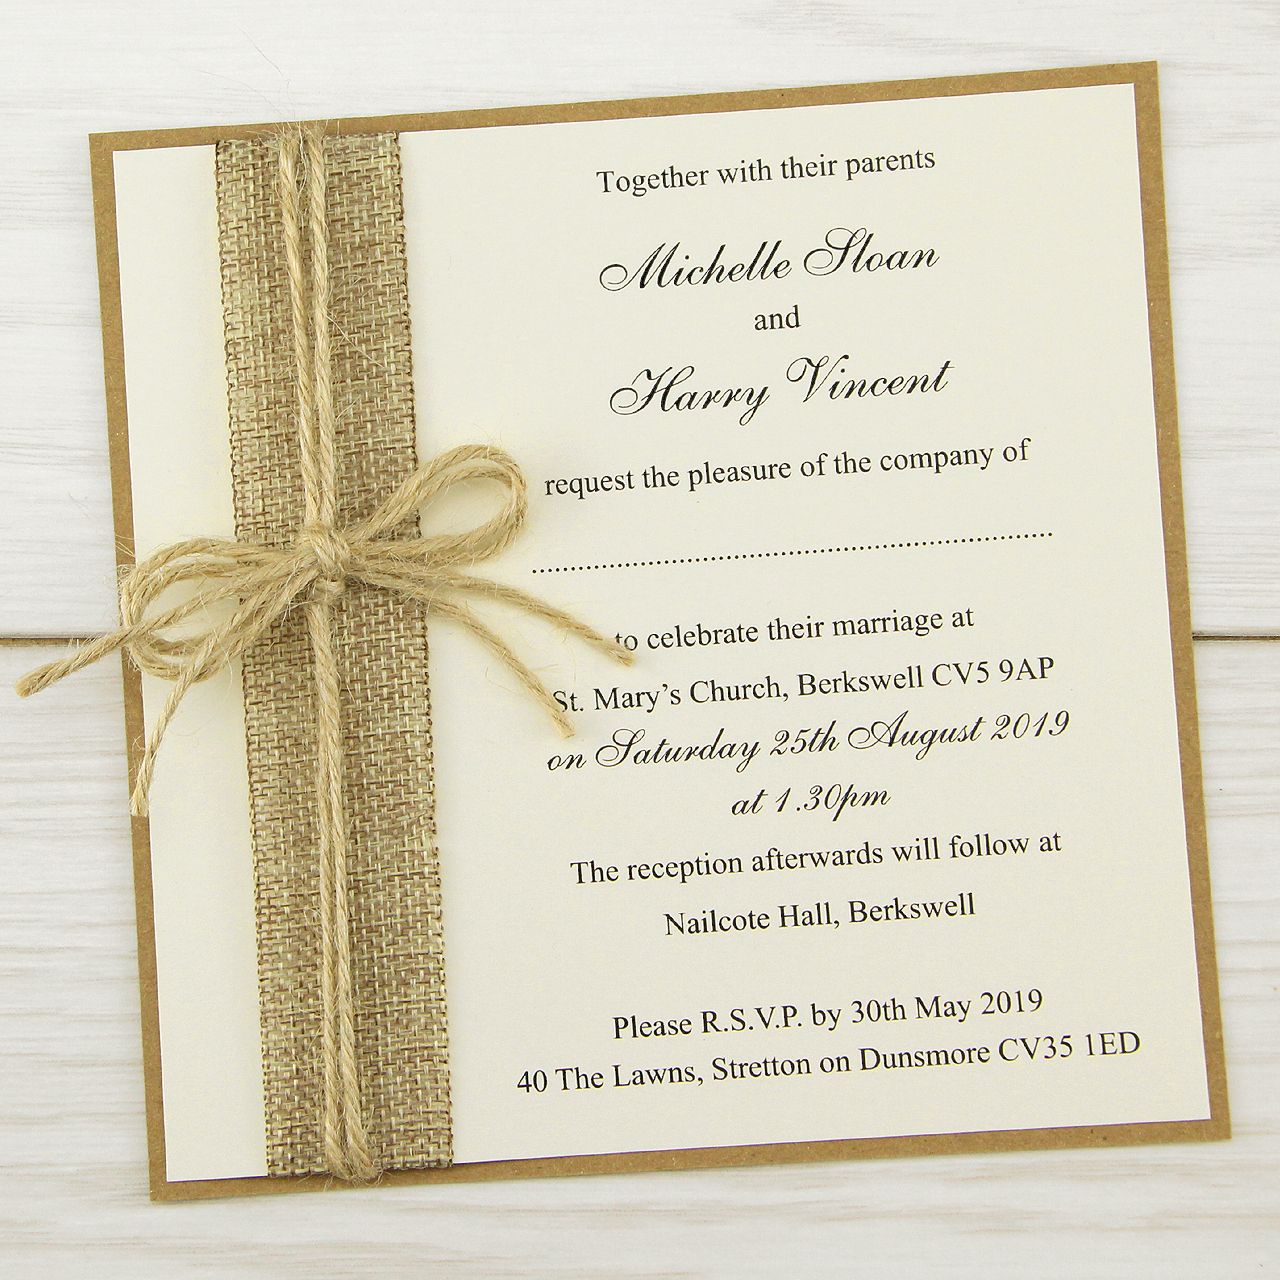 Invitation Card for Weddings New Rustic Burlap Layered Square